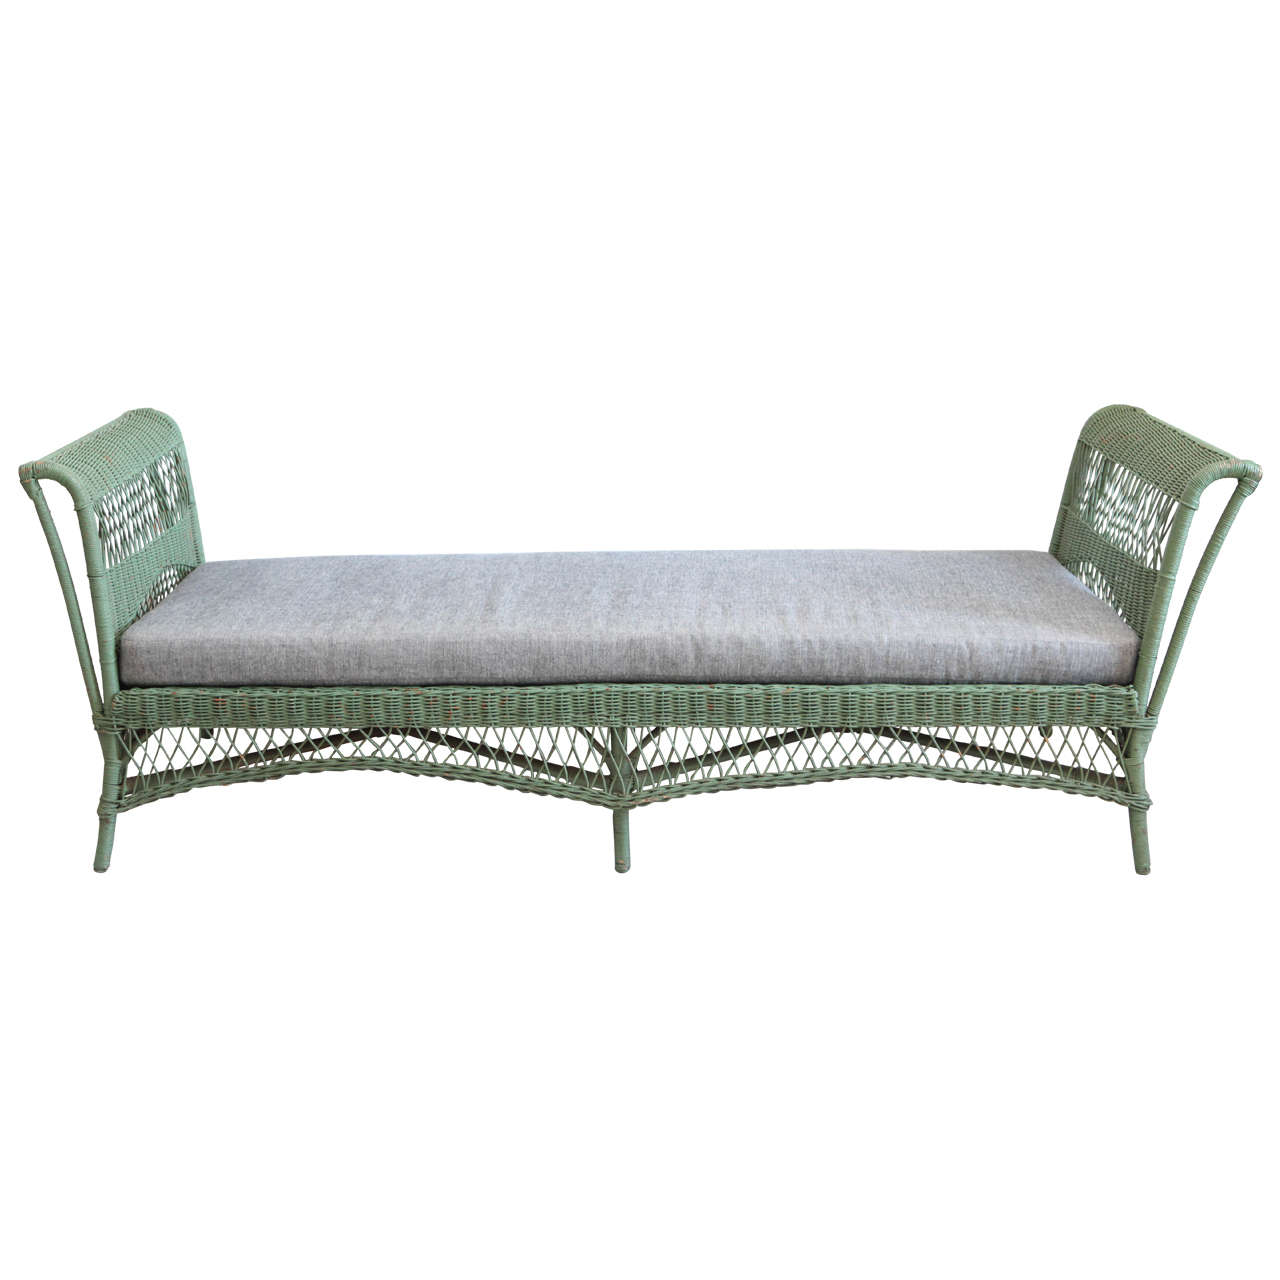 Green Wicker Daybed with Reverse Denim Cushion 1